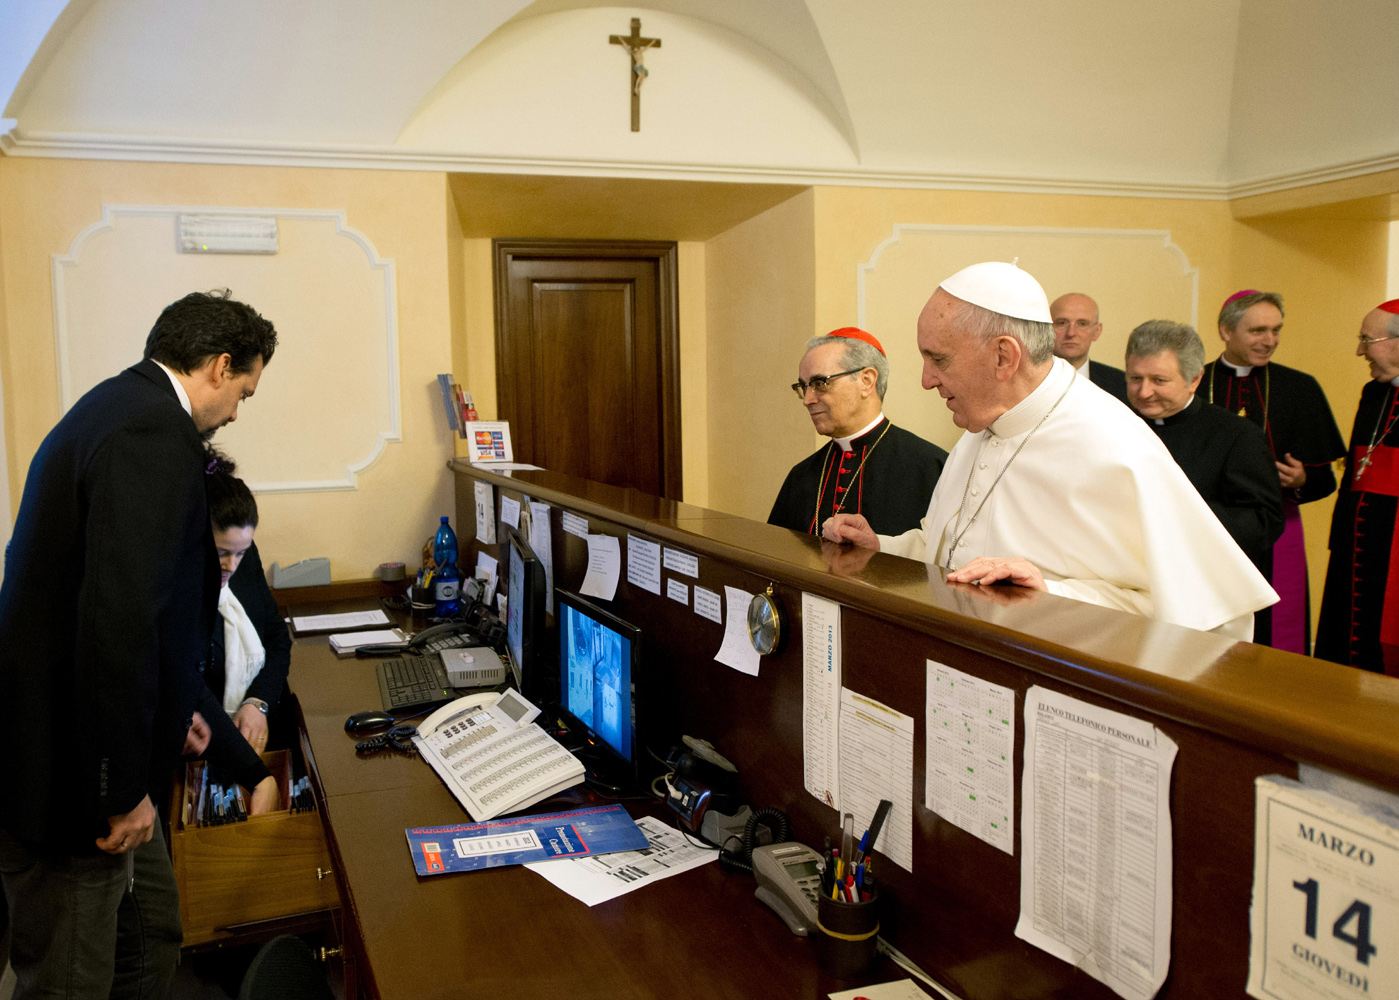 Paying the bill at Rome's Domus Internationalis Paulus VI hotel, where Pope Francis stayed as a cardinal before entering the conclave and being elected pope.